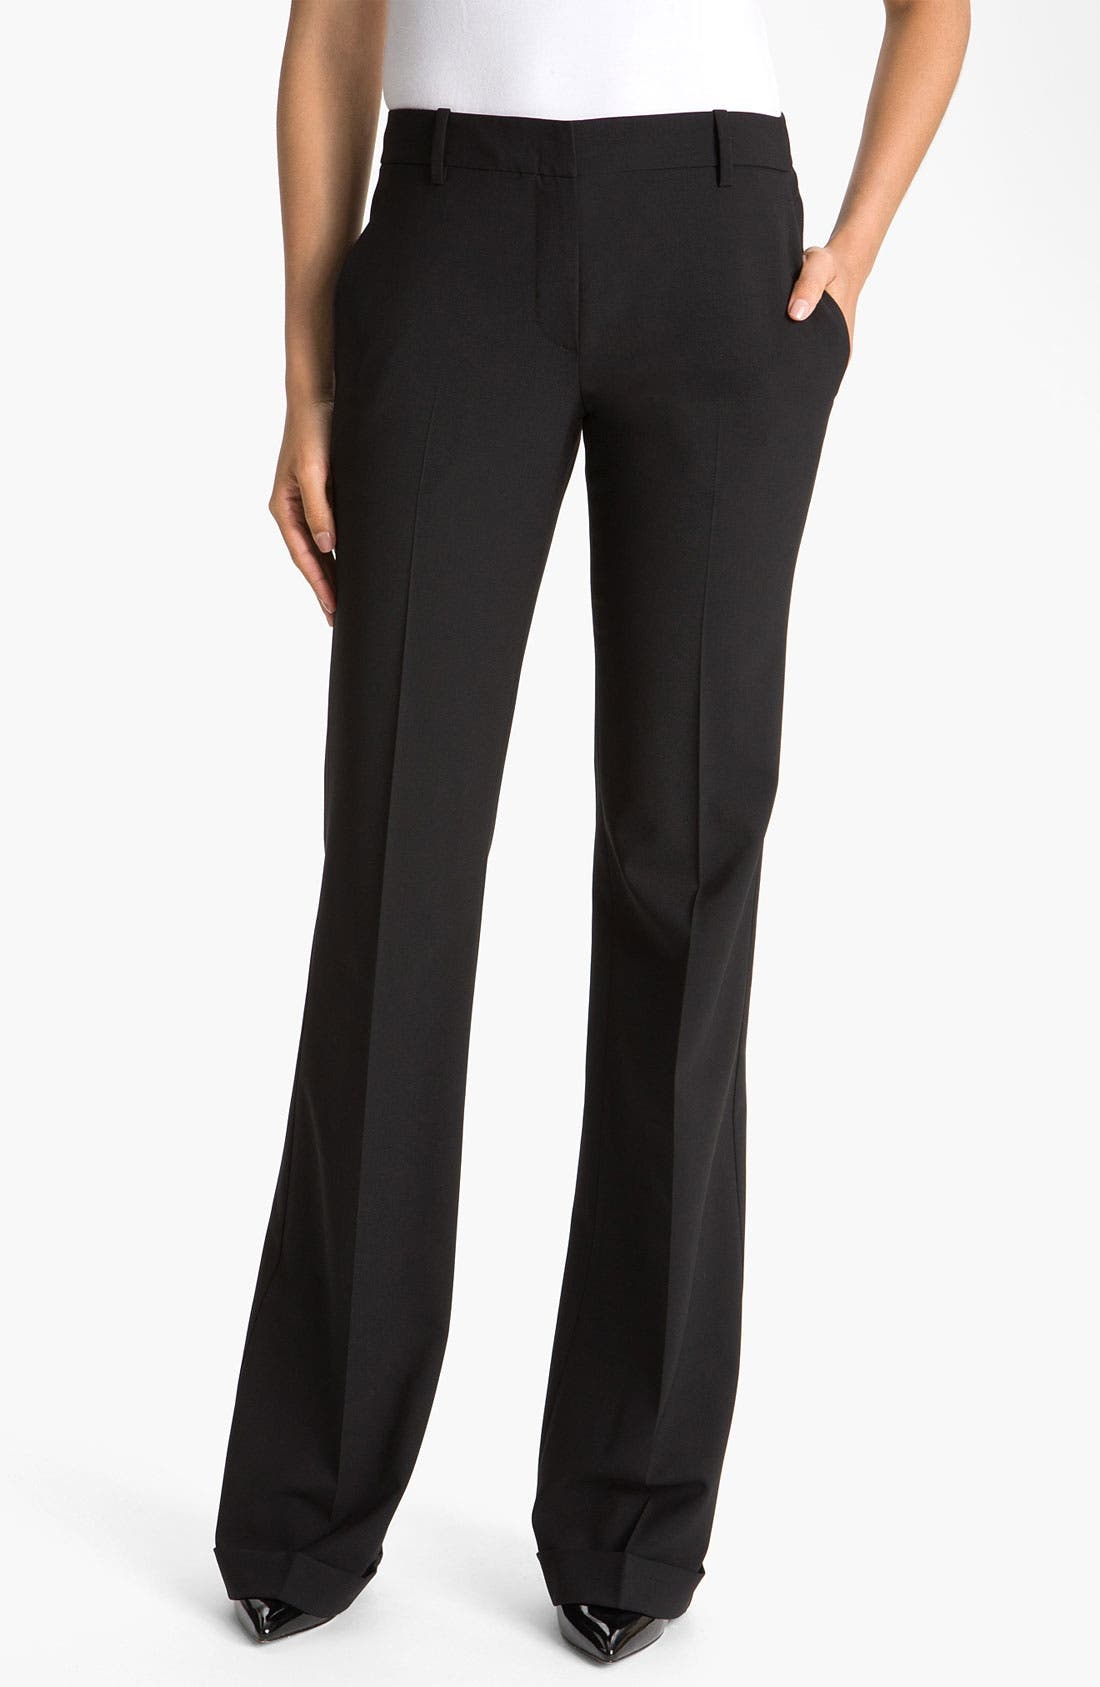 Alternate Image 1 Selected - Theory 'Lauren - Tailor' Cuff Pants